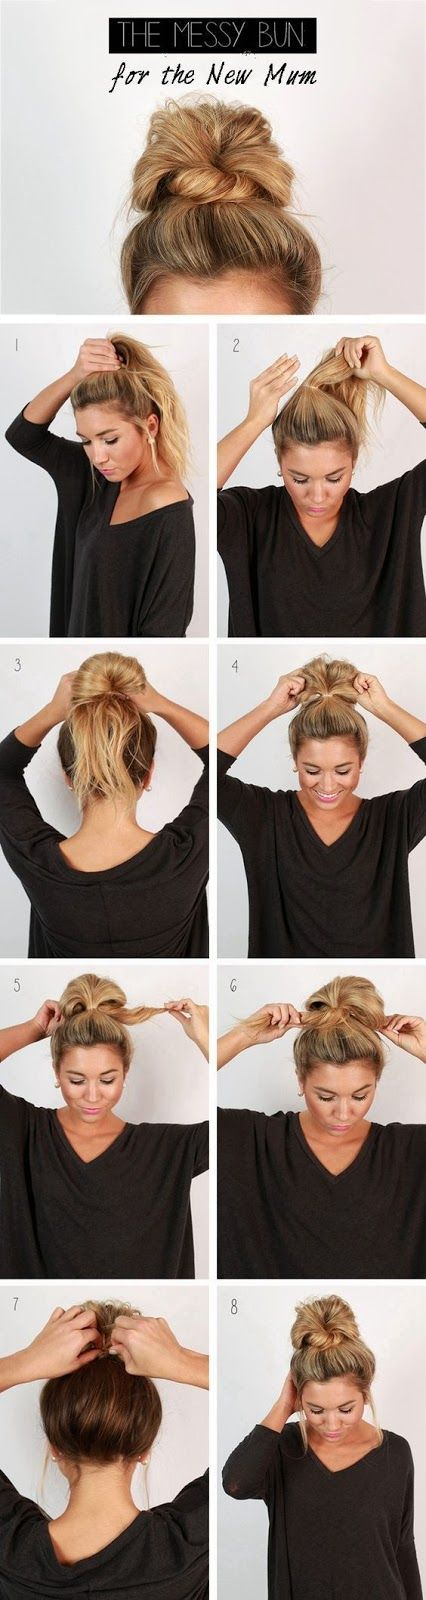 40 Best Style Ideas To Try This Summer Diy Hairstyles Easy Easy Updo Hairstyles Long Hair Styles